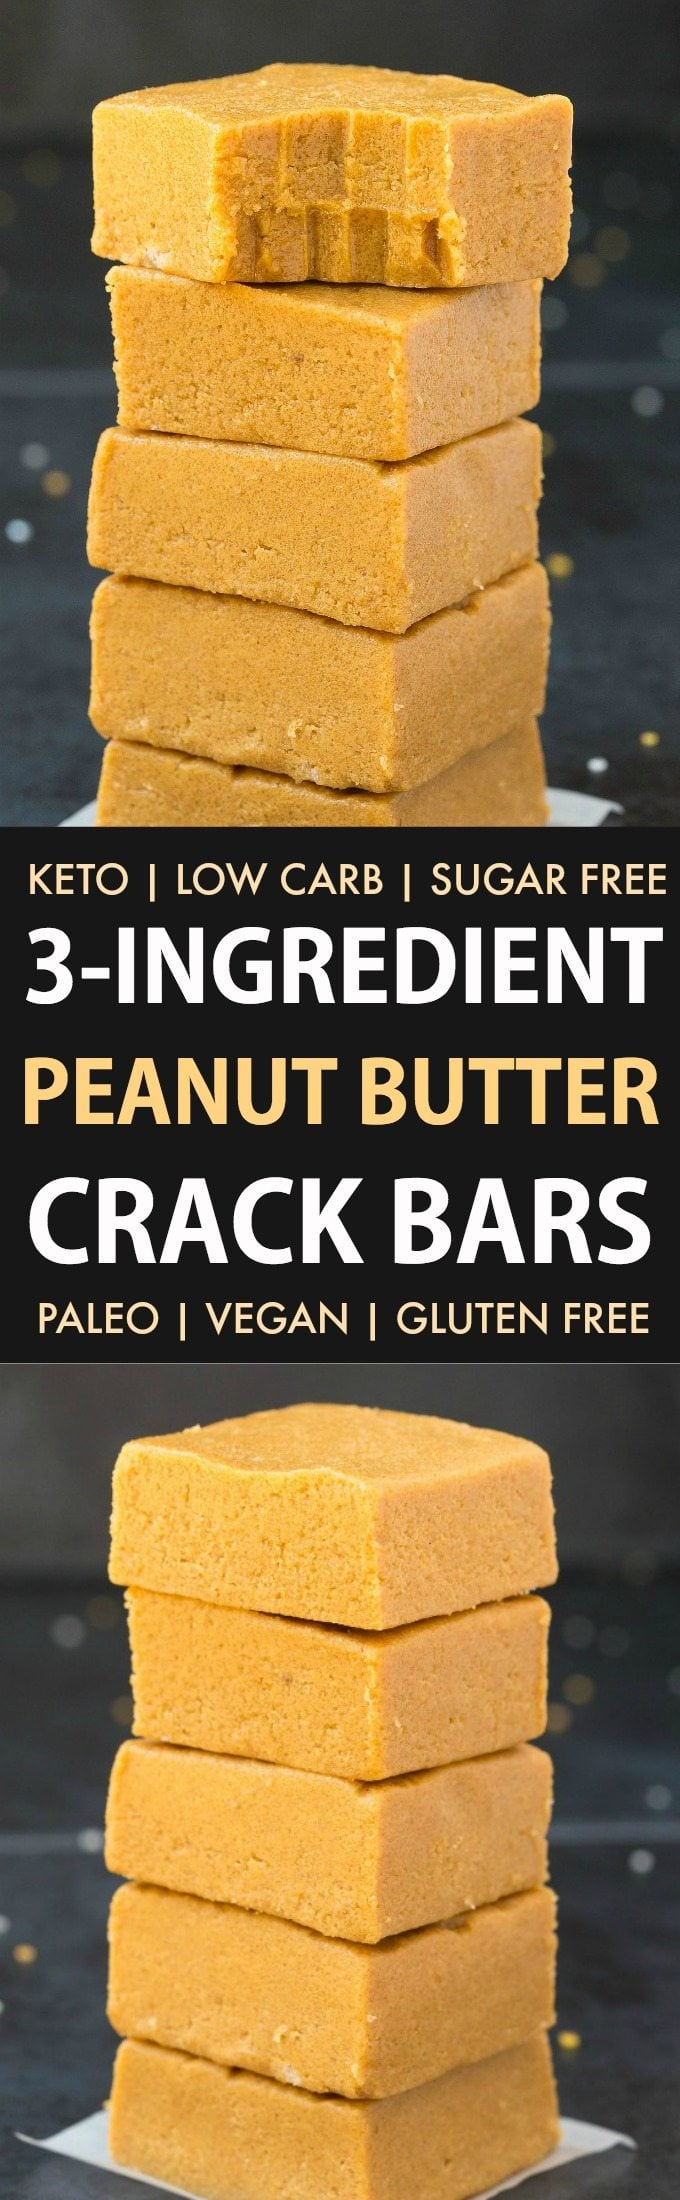 3-Ingredient No Bake Peanut Butter Crack Bars (Keto, Paleo, Vegan, Sugar Free)- Make this easy no bake peanut butter crack bars recipe which tastes like fudge in under 5 minutes, to satisfy your sweet tooth the healthy way! Low carb, smooth, creamy and with just 3 ingredients! #lowcarbrecipe #healthyfudge #peanutbutter #ketodessert #lowcarb #sugarfree | Recipe on thebigmansworld.com